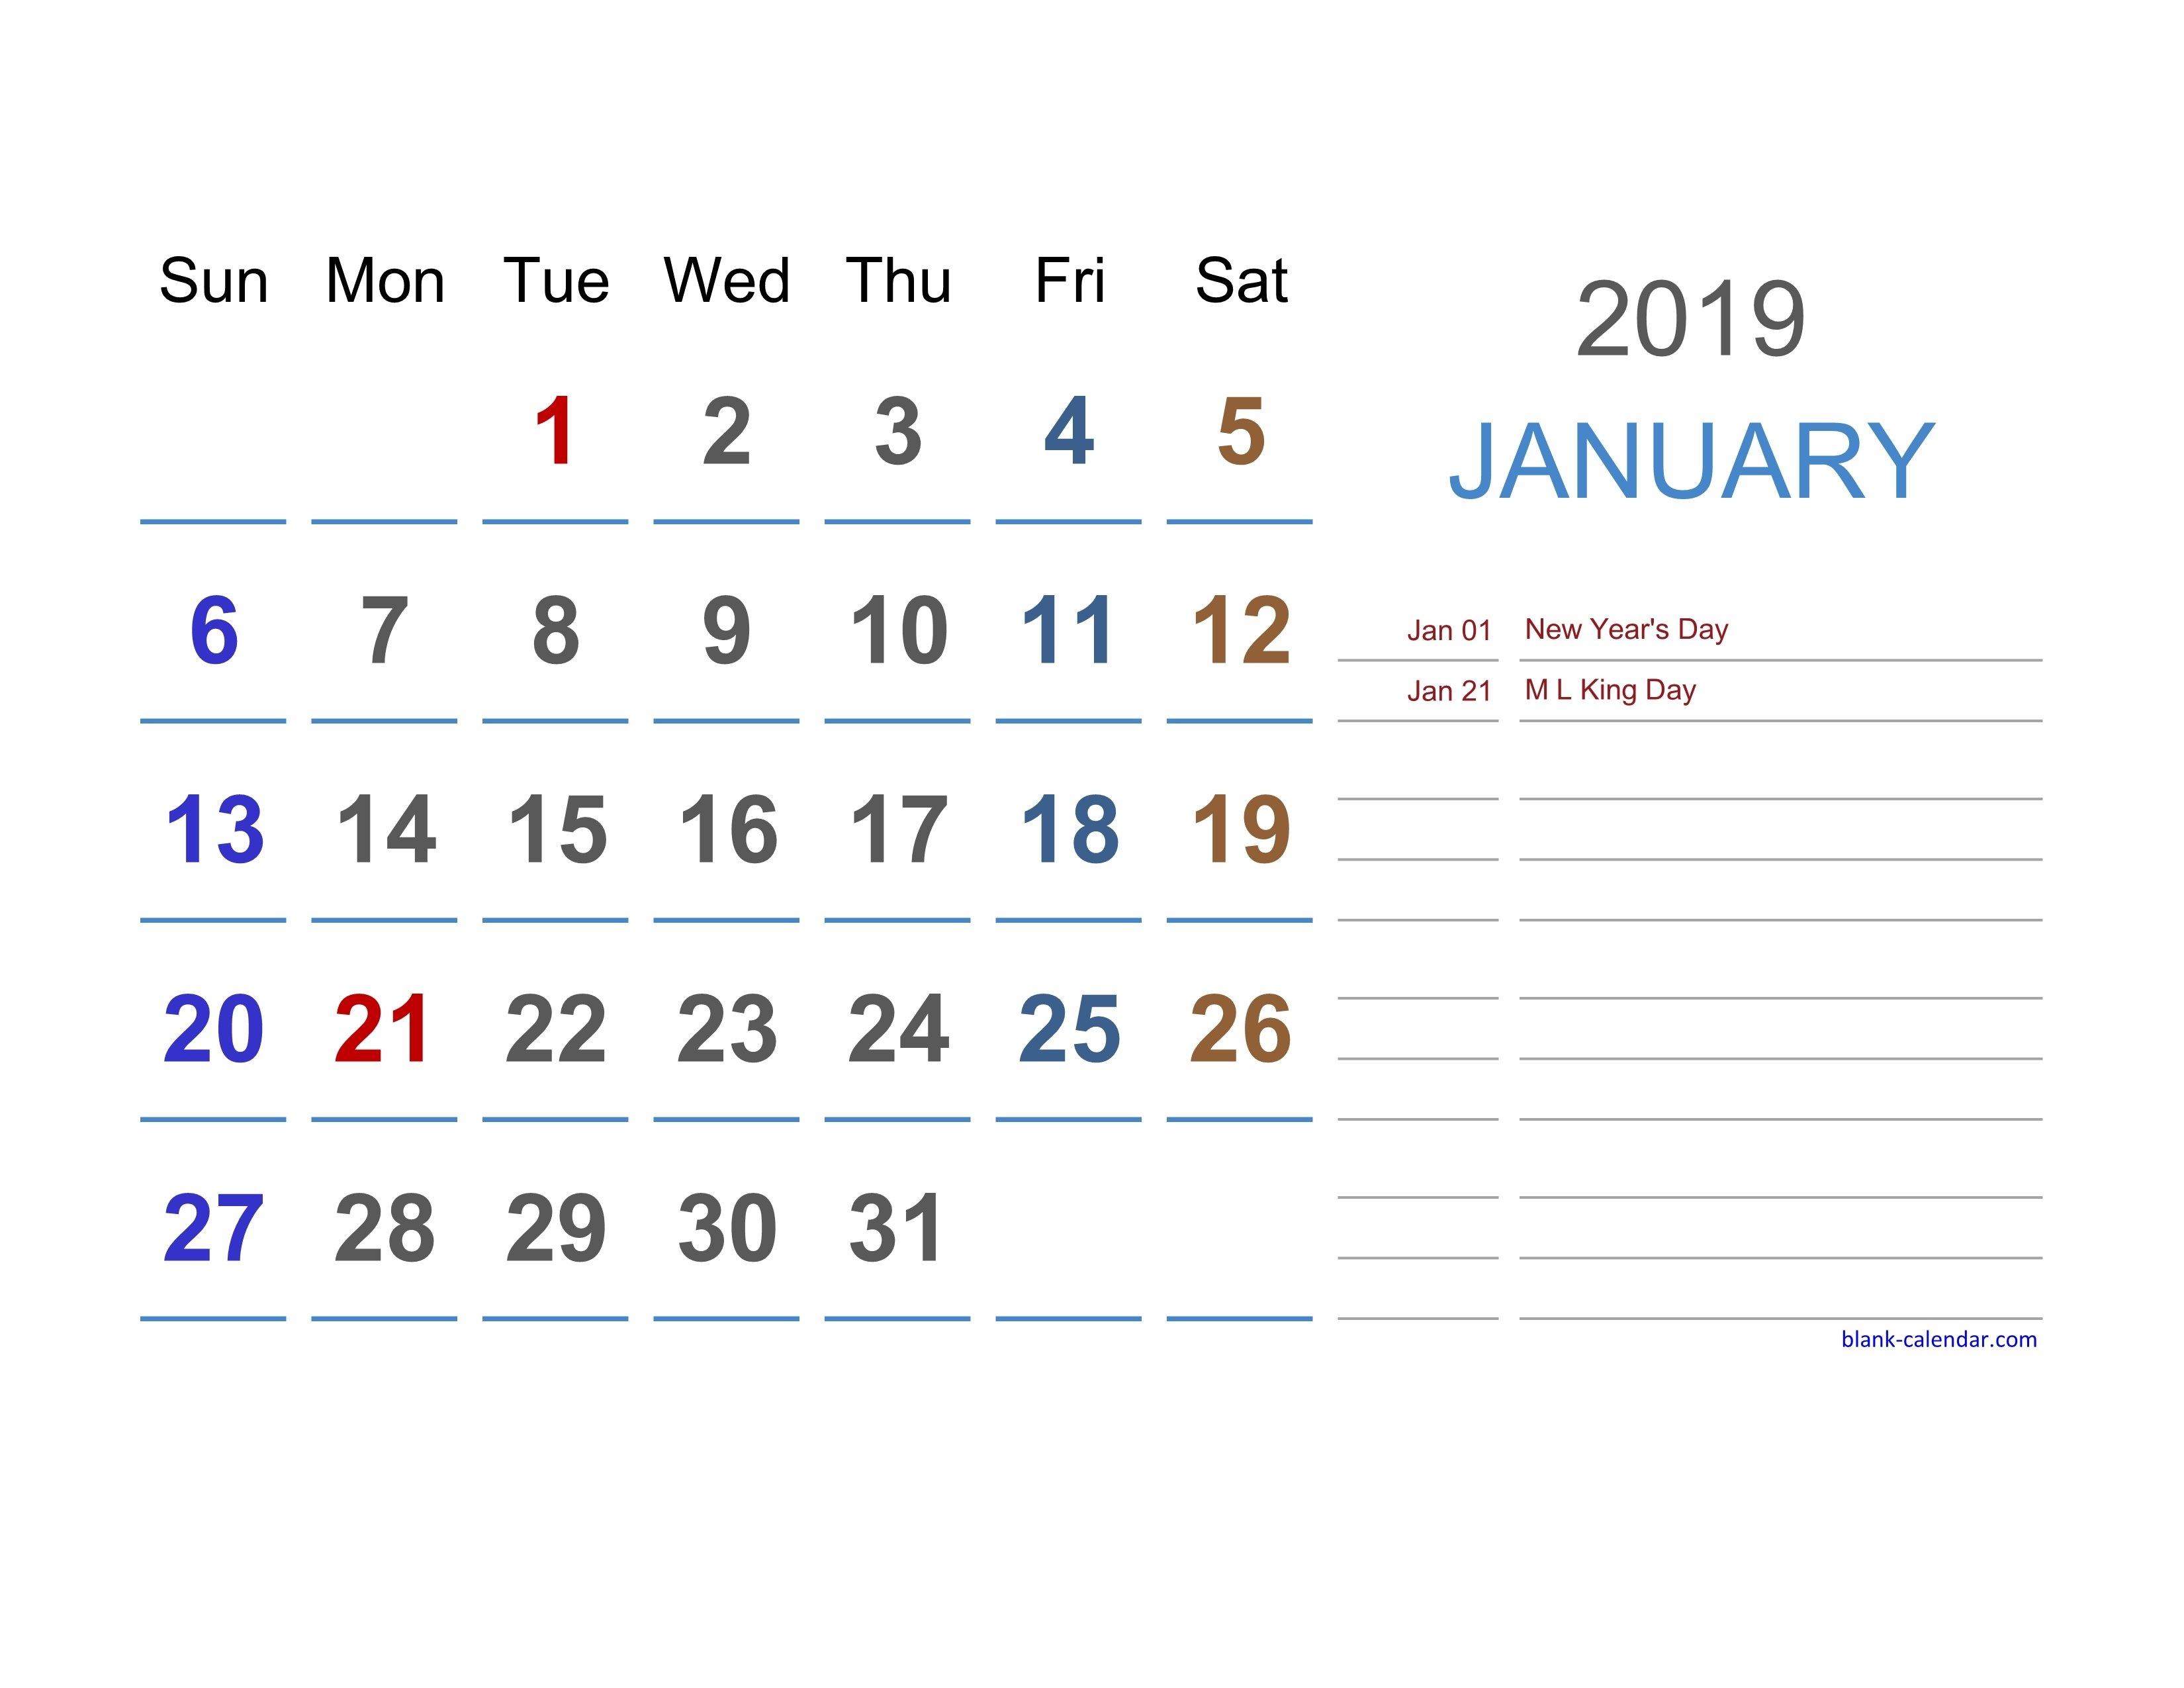 Free Download 2019 Excel Calendar Large Space For Notes (Horizontal) Calendar 2019 Excel Free